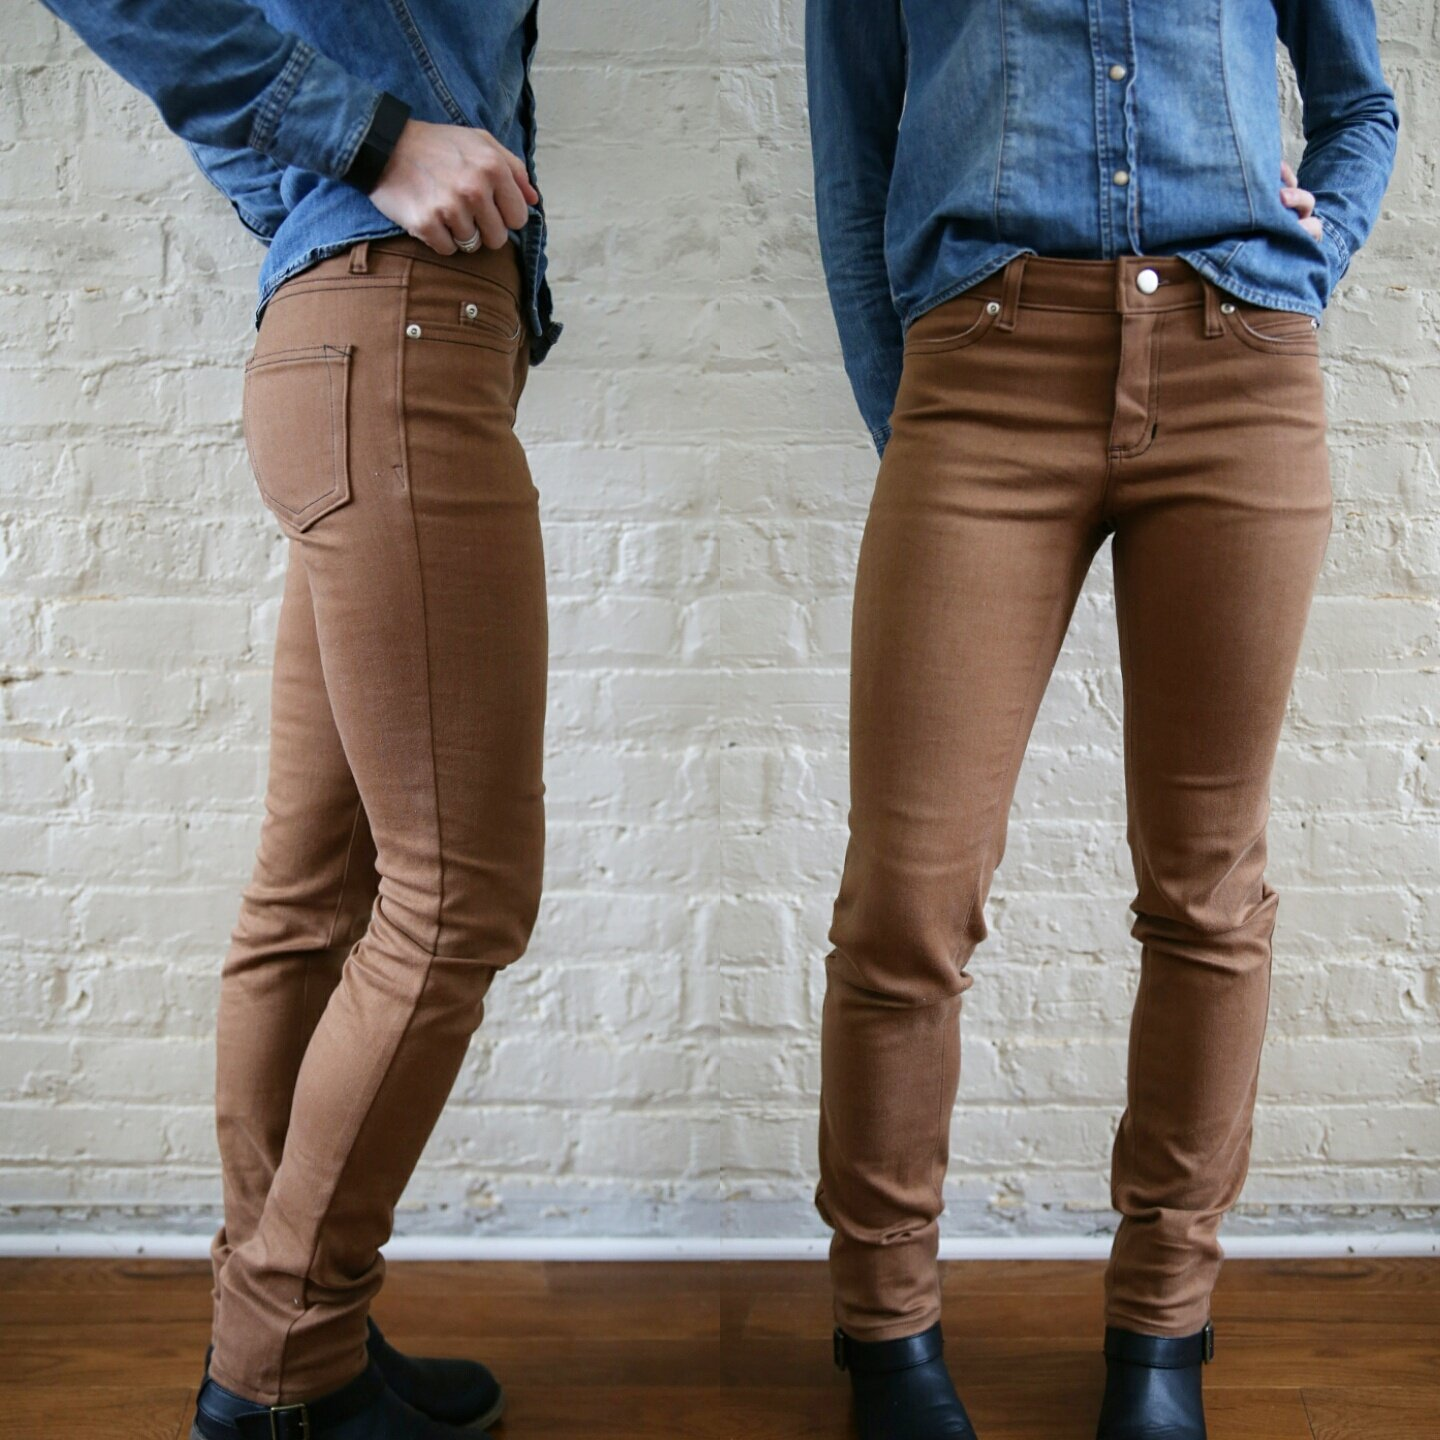 Ginger Jeans pattern by Closet Case Files